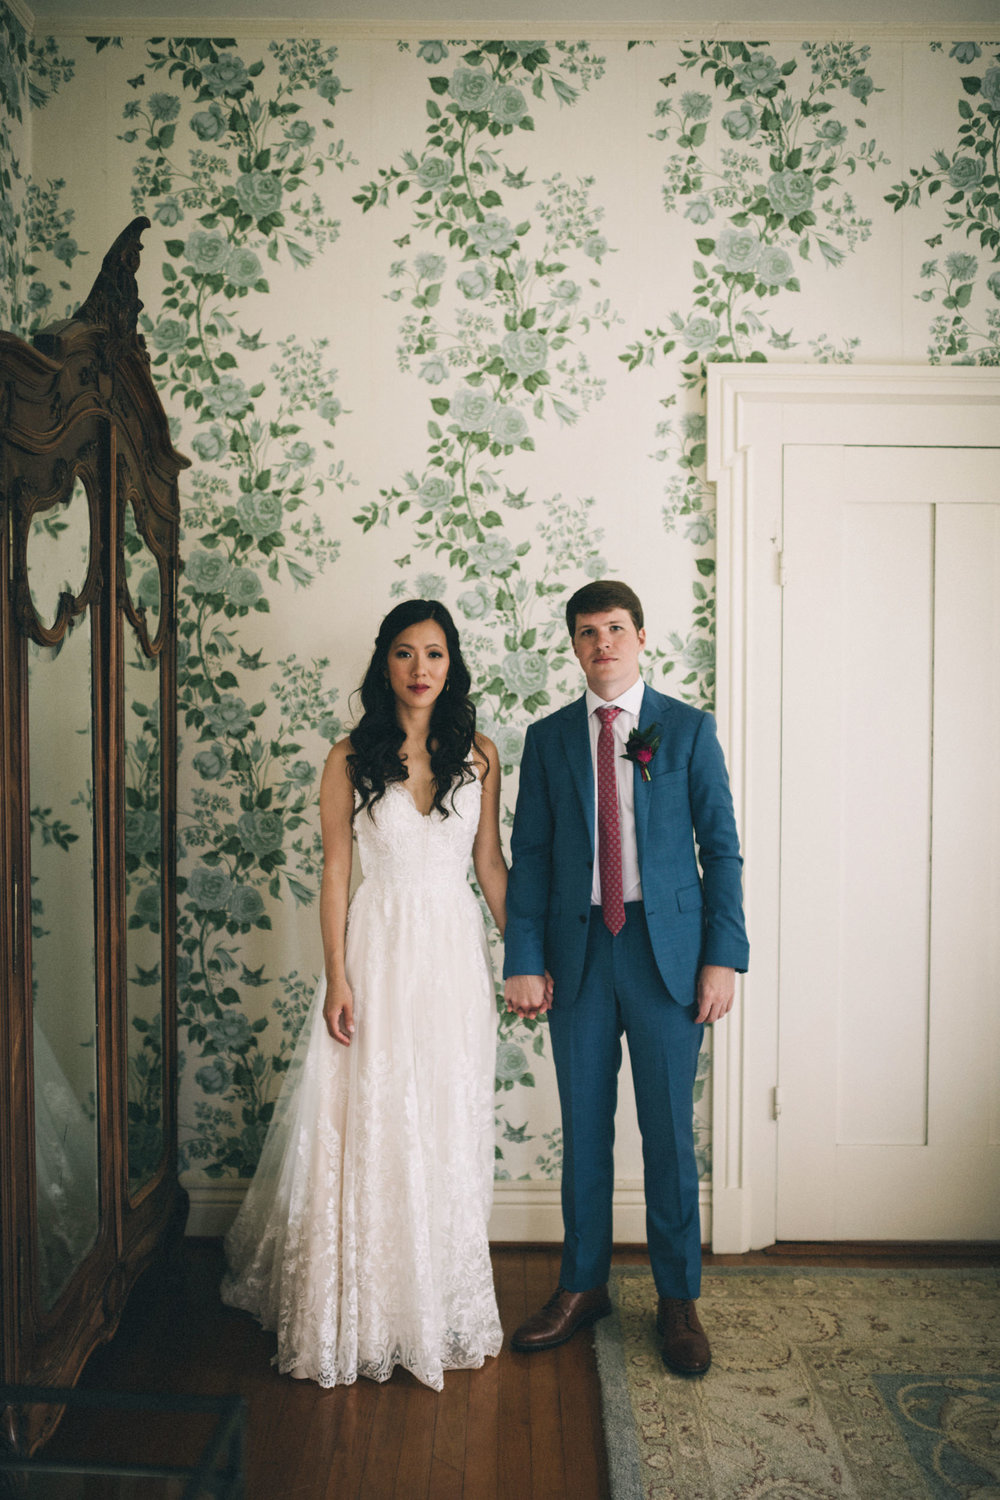 Louisville-Kentucky-Wedding-and-Elopement-Photographer-Sarah-Katherine-Davis-Photography-Summer-Jewel-Toned-Wedding-Chineese-Tea-Ceremony-Warrenwood-Manor-Danville-231.jpg